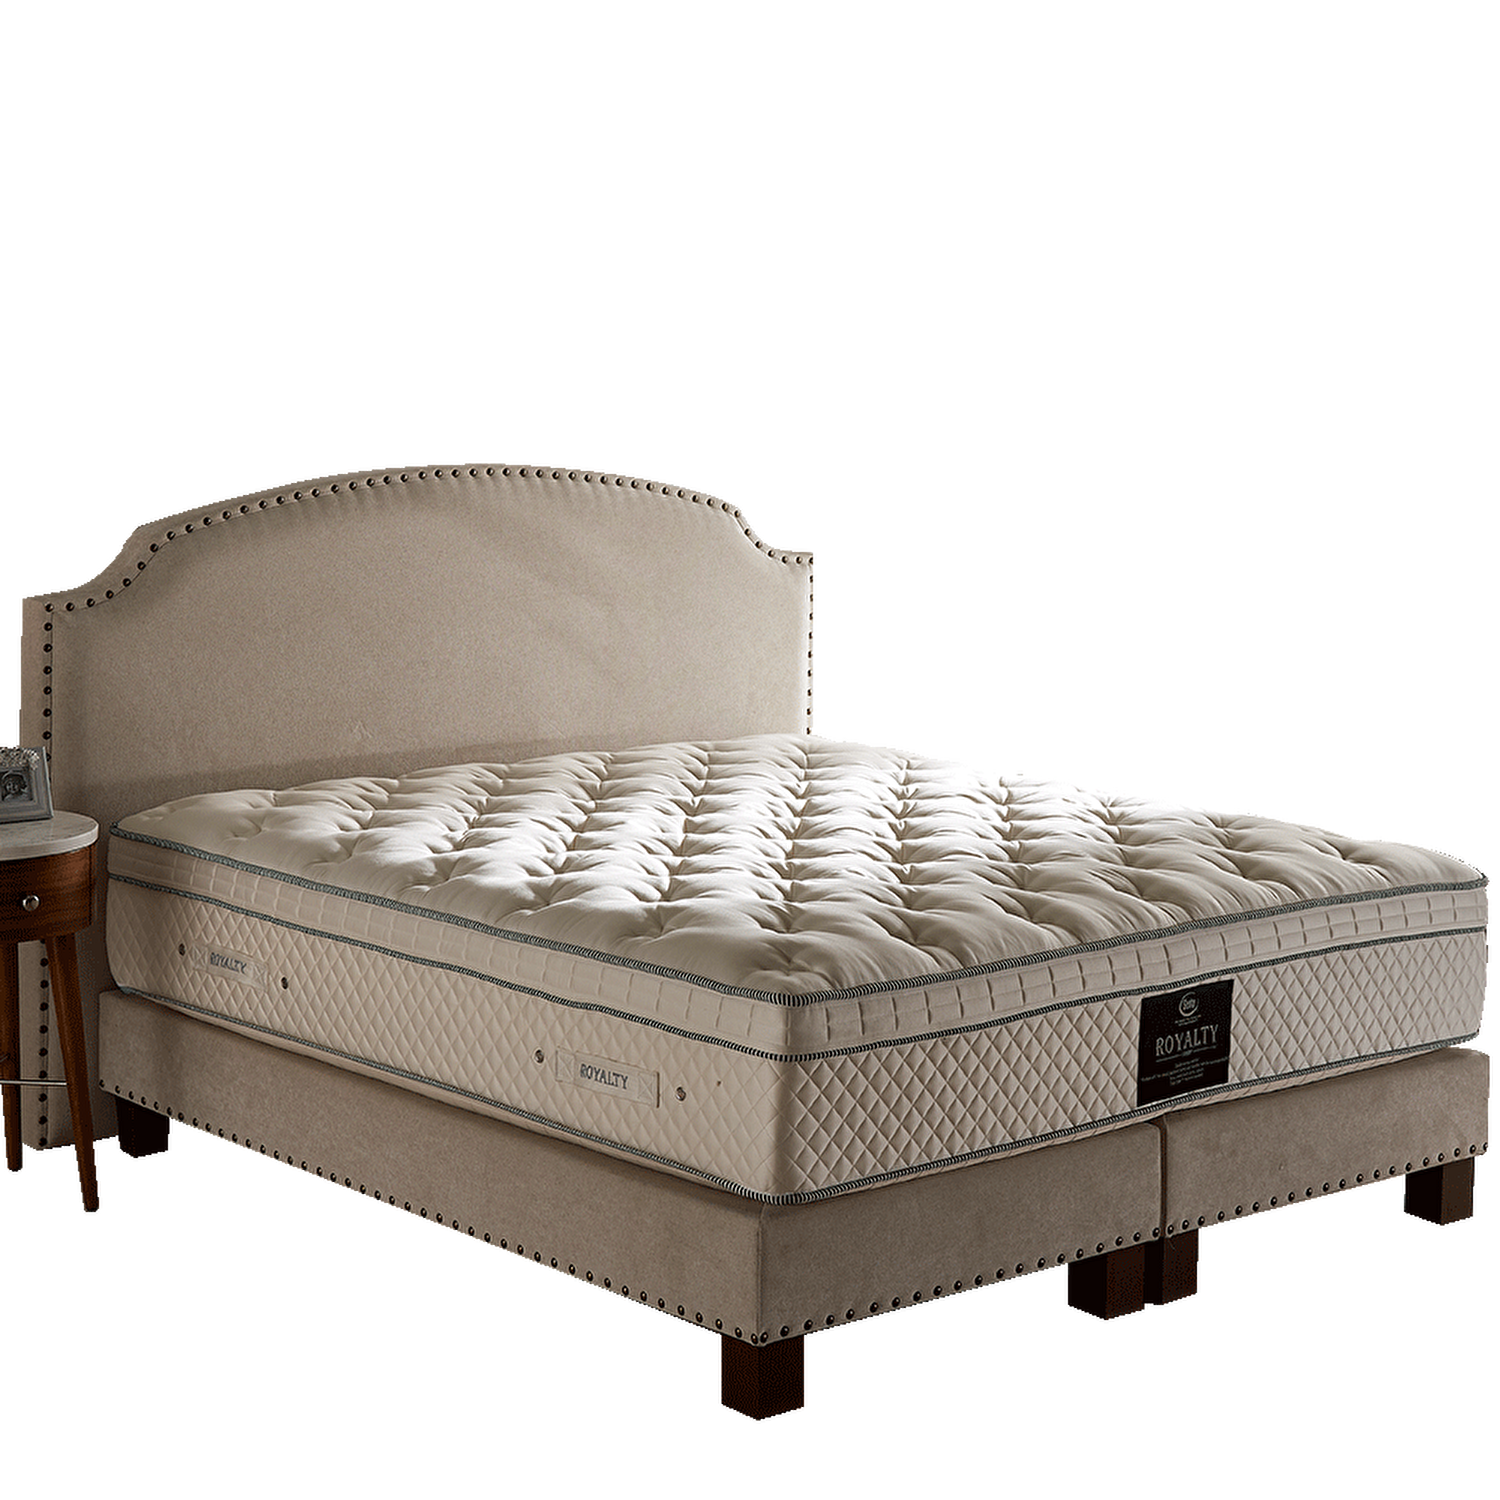 ROYALTY LUXURY DOUBLE CORE YATAK